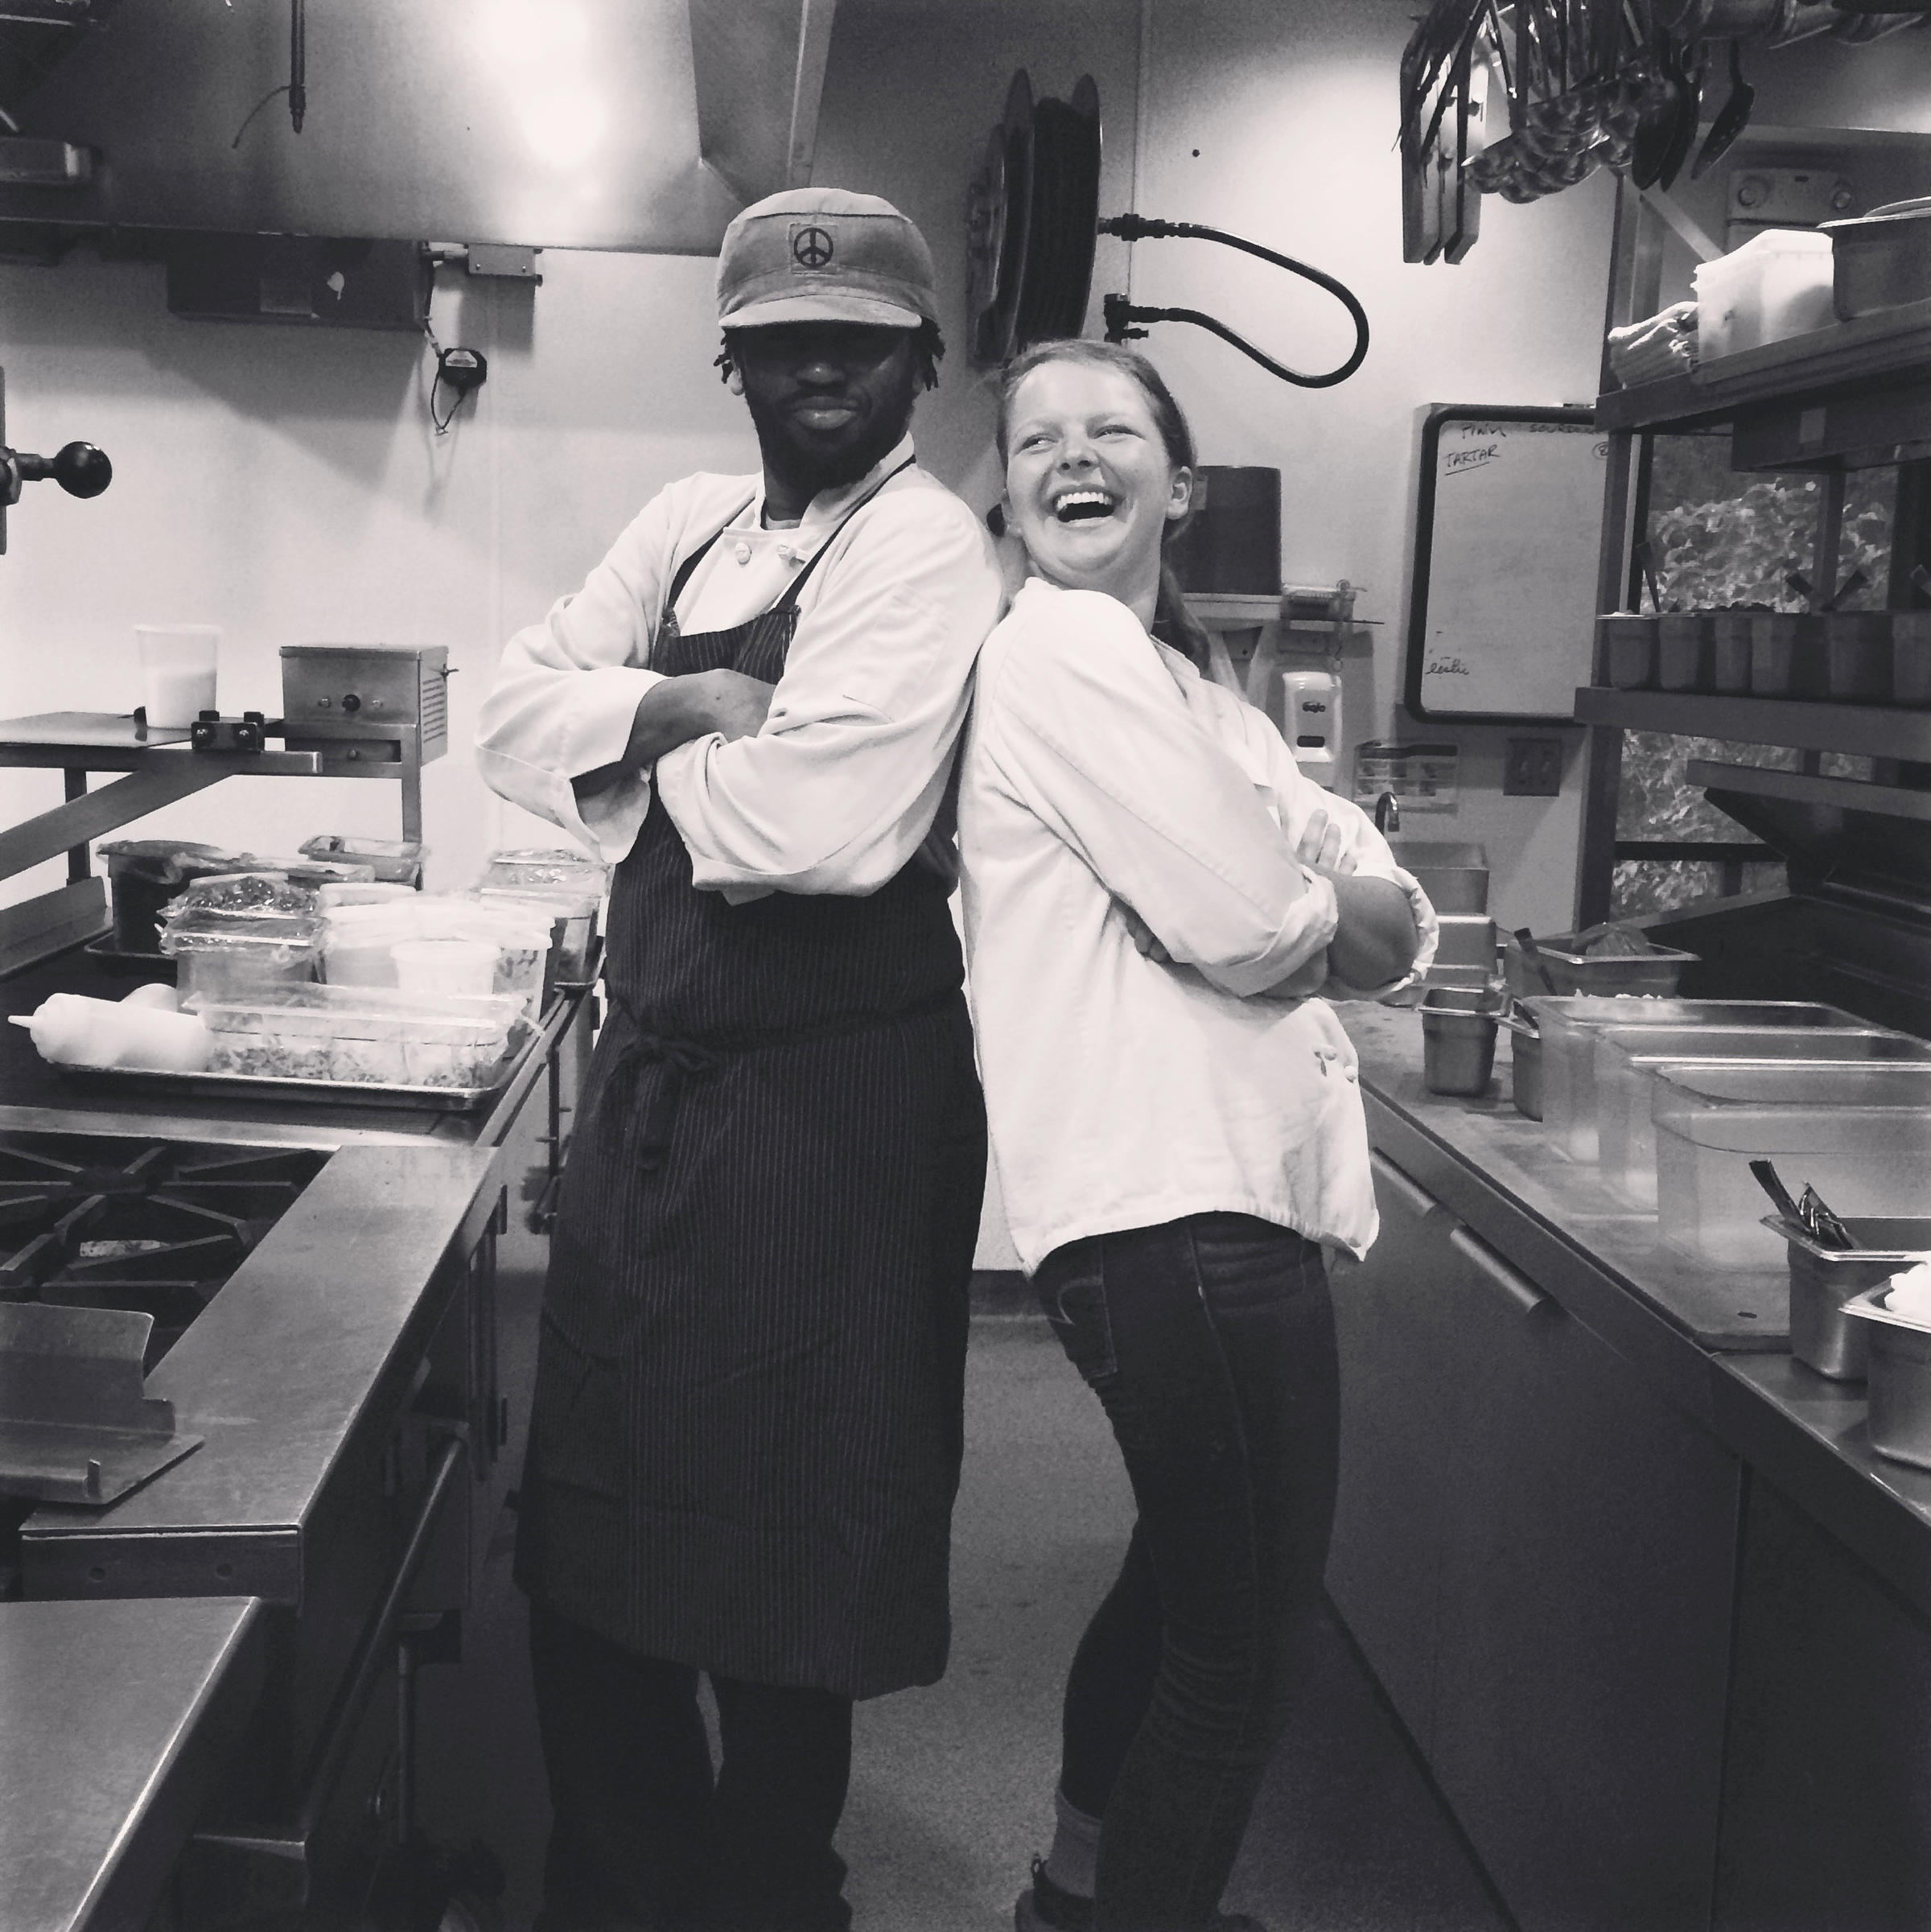 the writer rachael cusick is pictured with chef oneil wilson her co worker in the kitchen during a summer job as a line cook during the breakfast shift - Line Cook Jobs